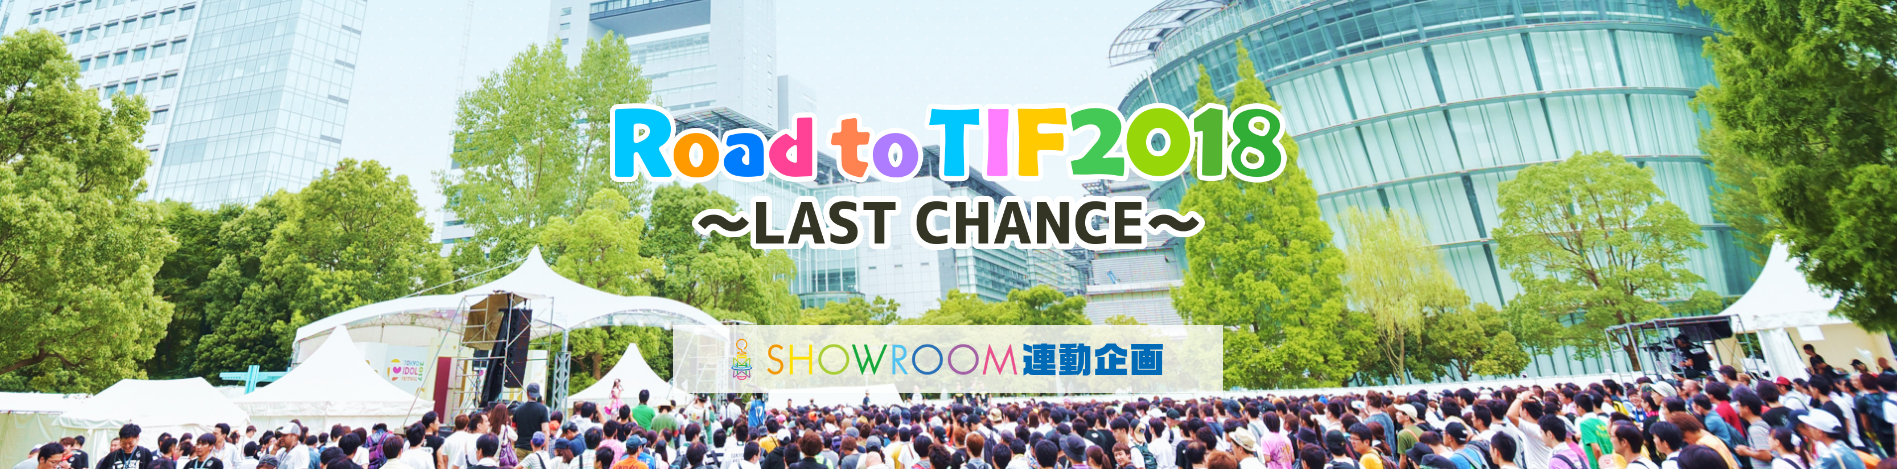 SHOWROOMイベント「Road to TIF2018」参戦!!